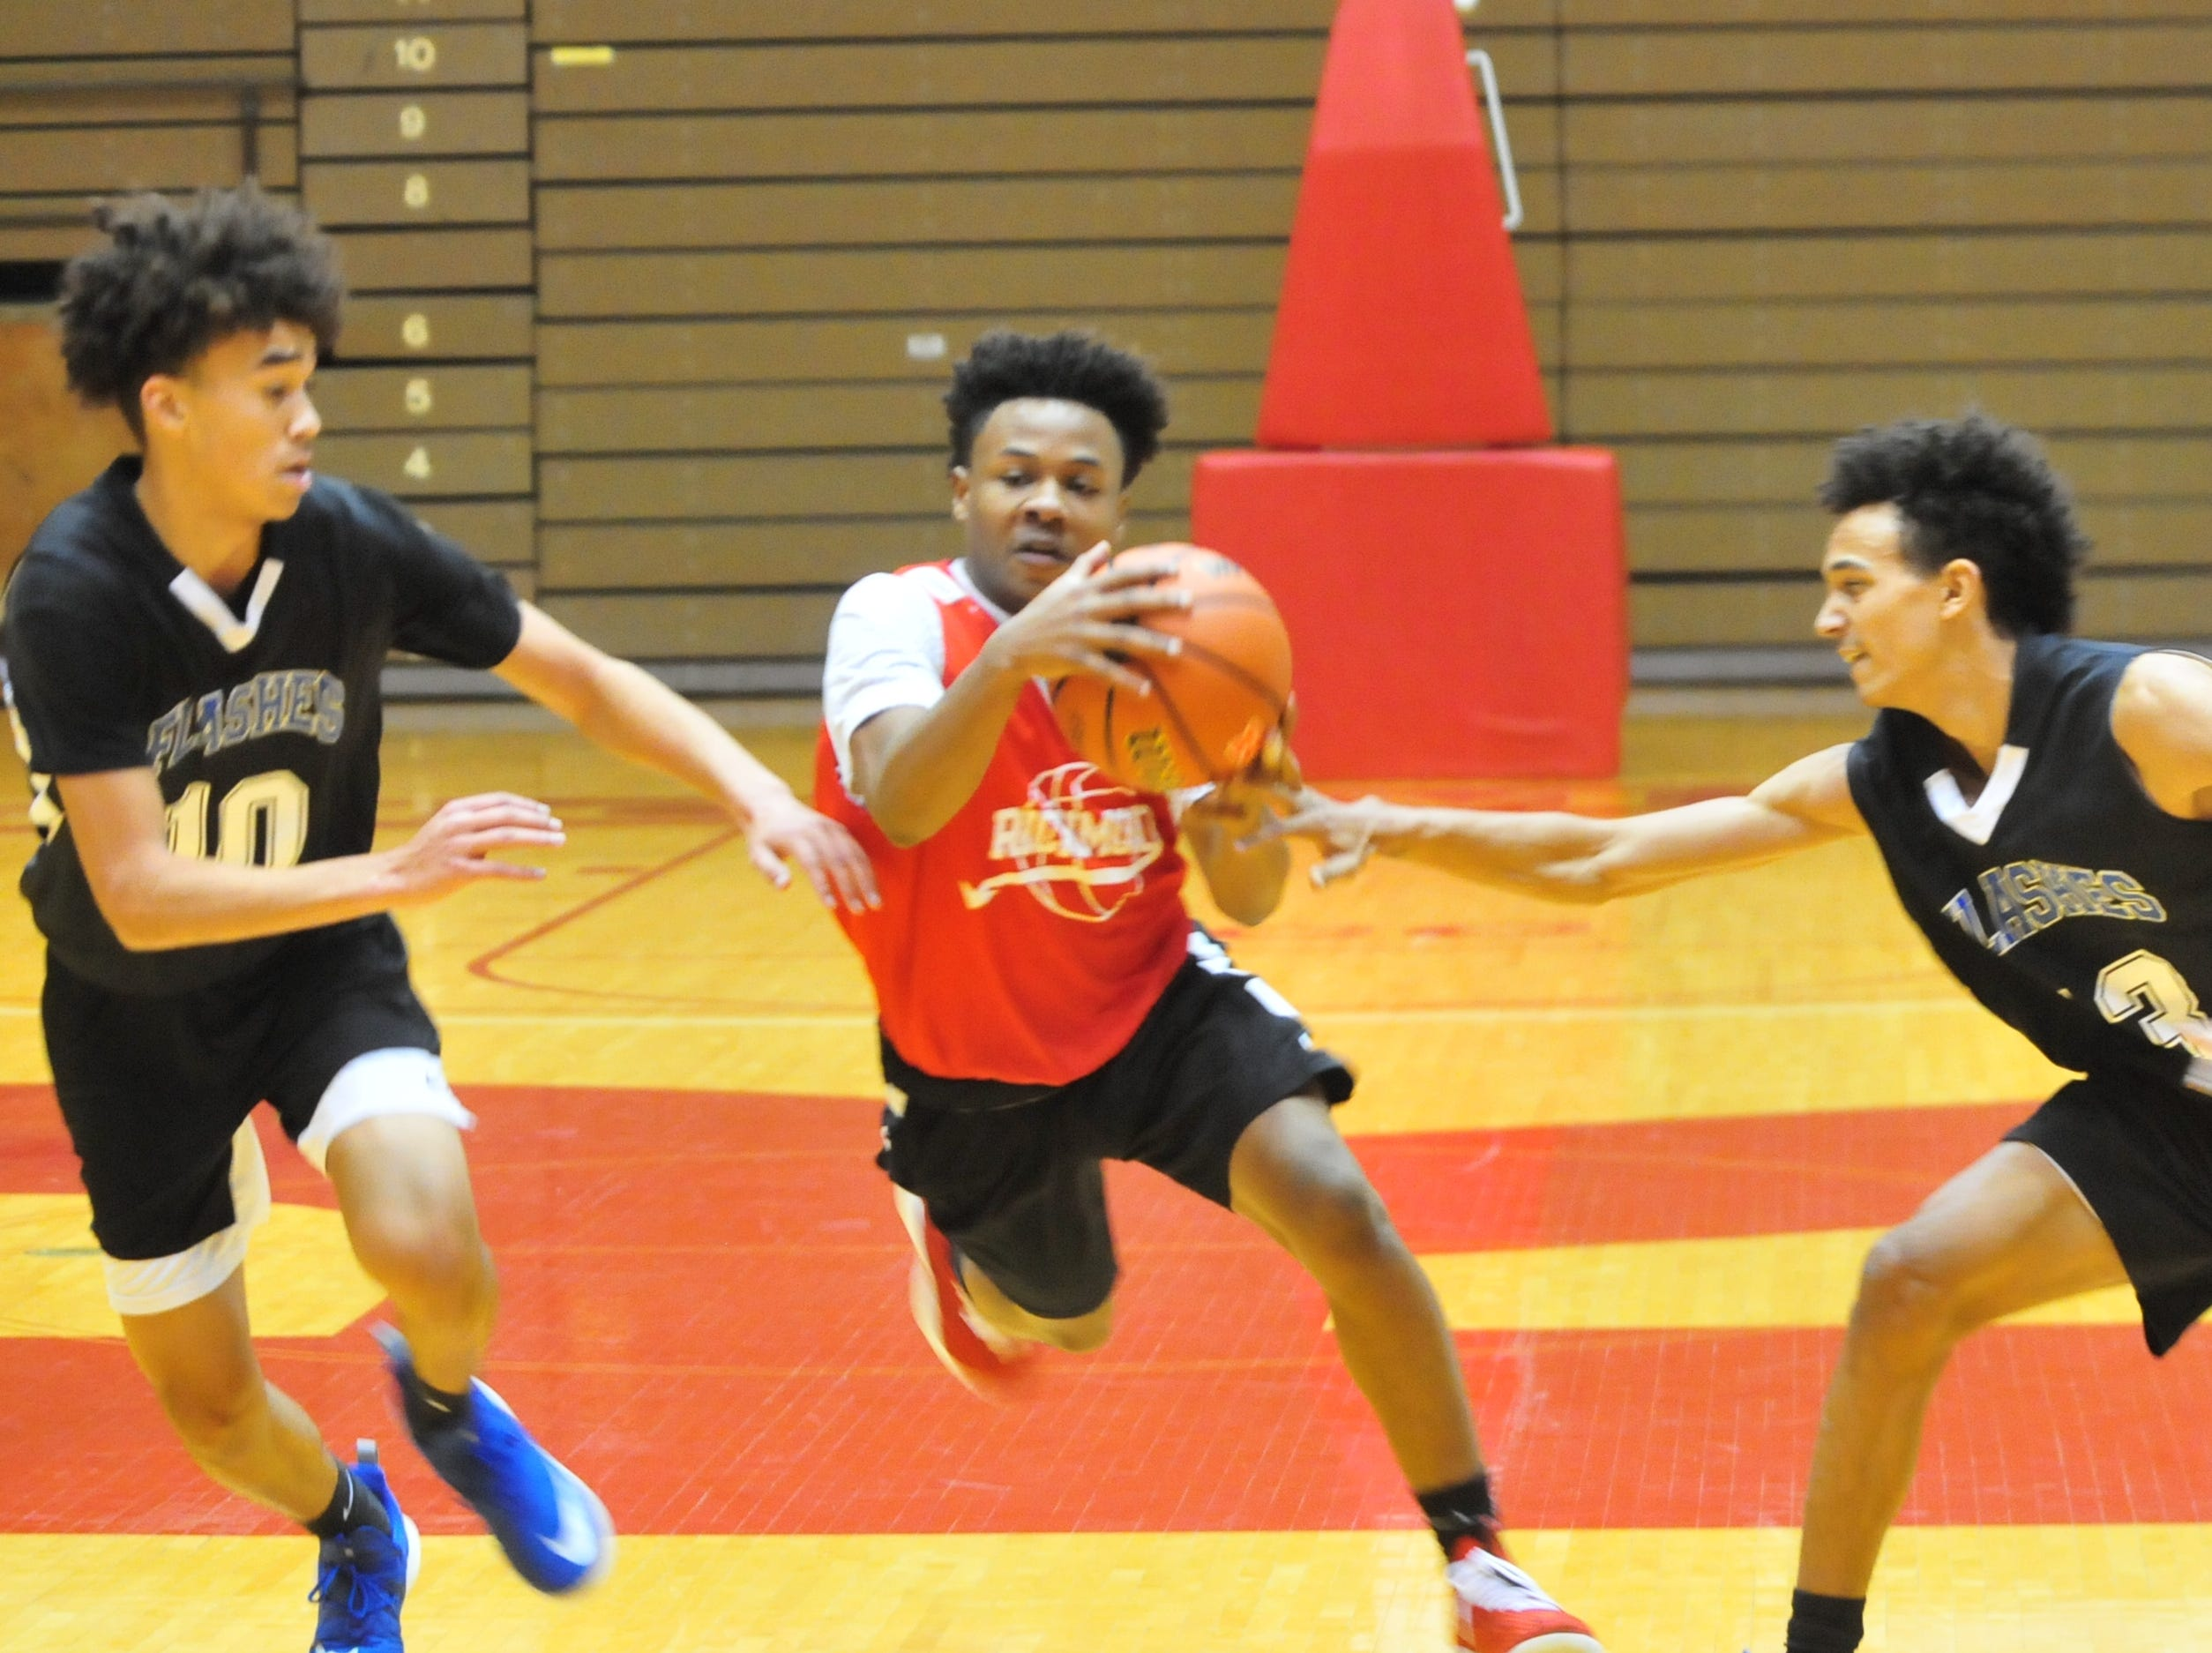 Richmond High School junior Koream Jett moves the ball during a boys basketball scrimmage against Franklin Central Saturday, Nov. 17, 2018 at Richmond High School's Tiernan Center.